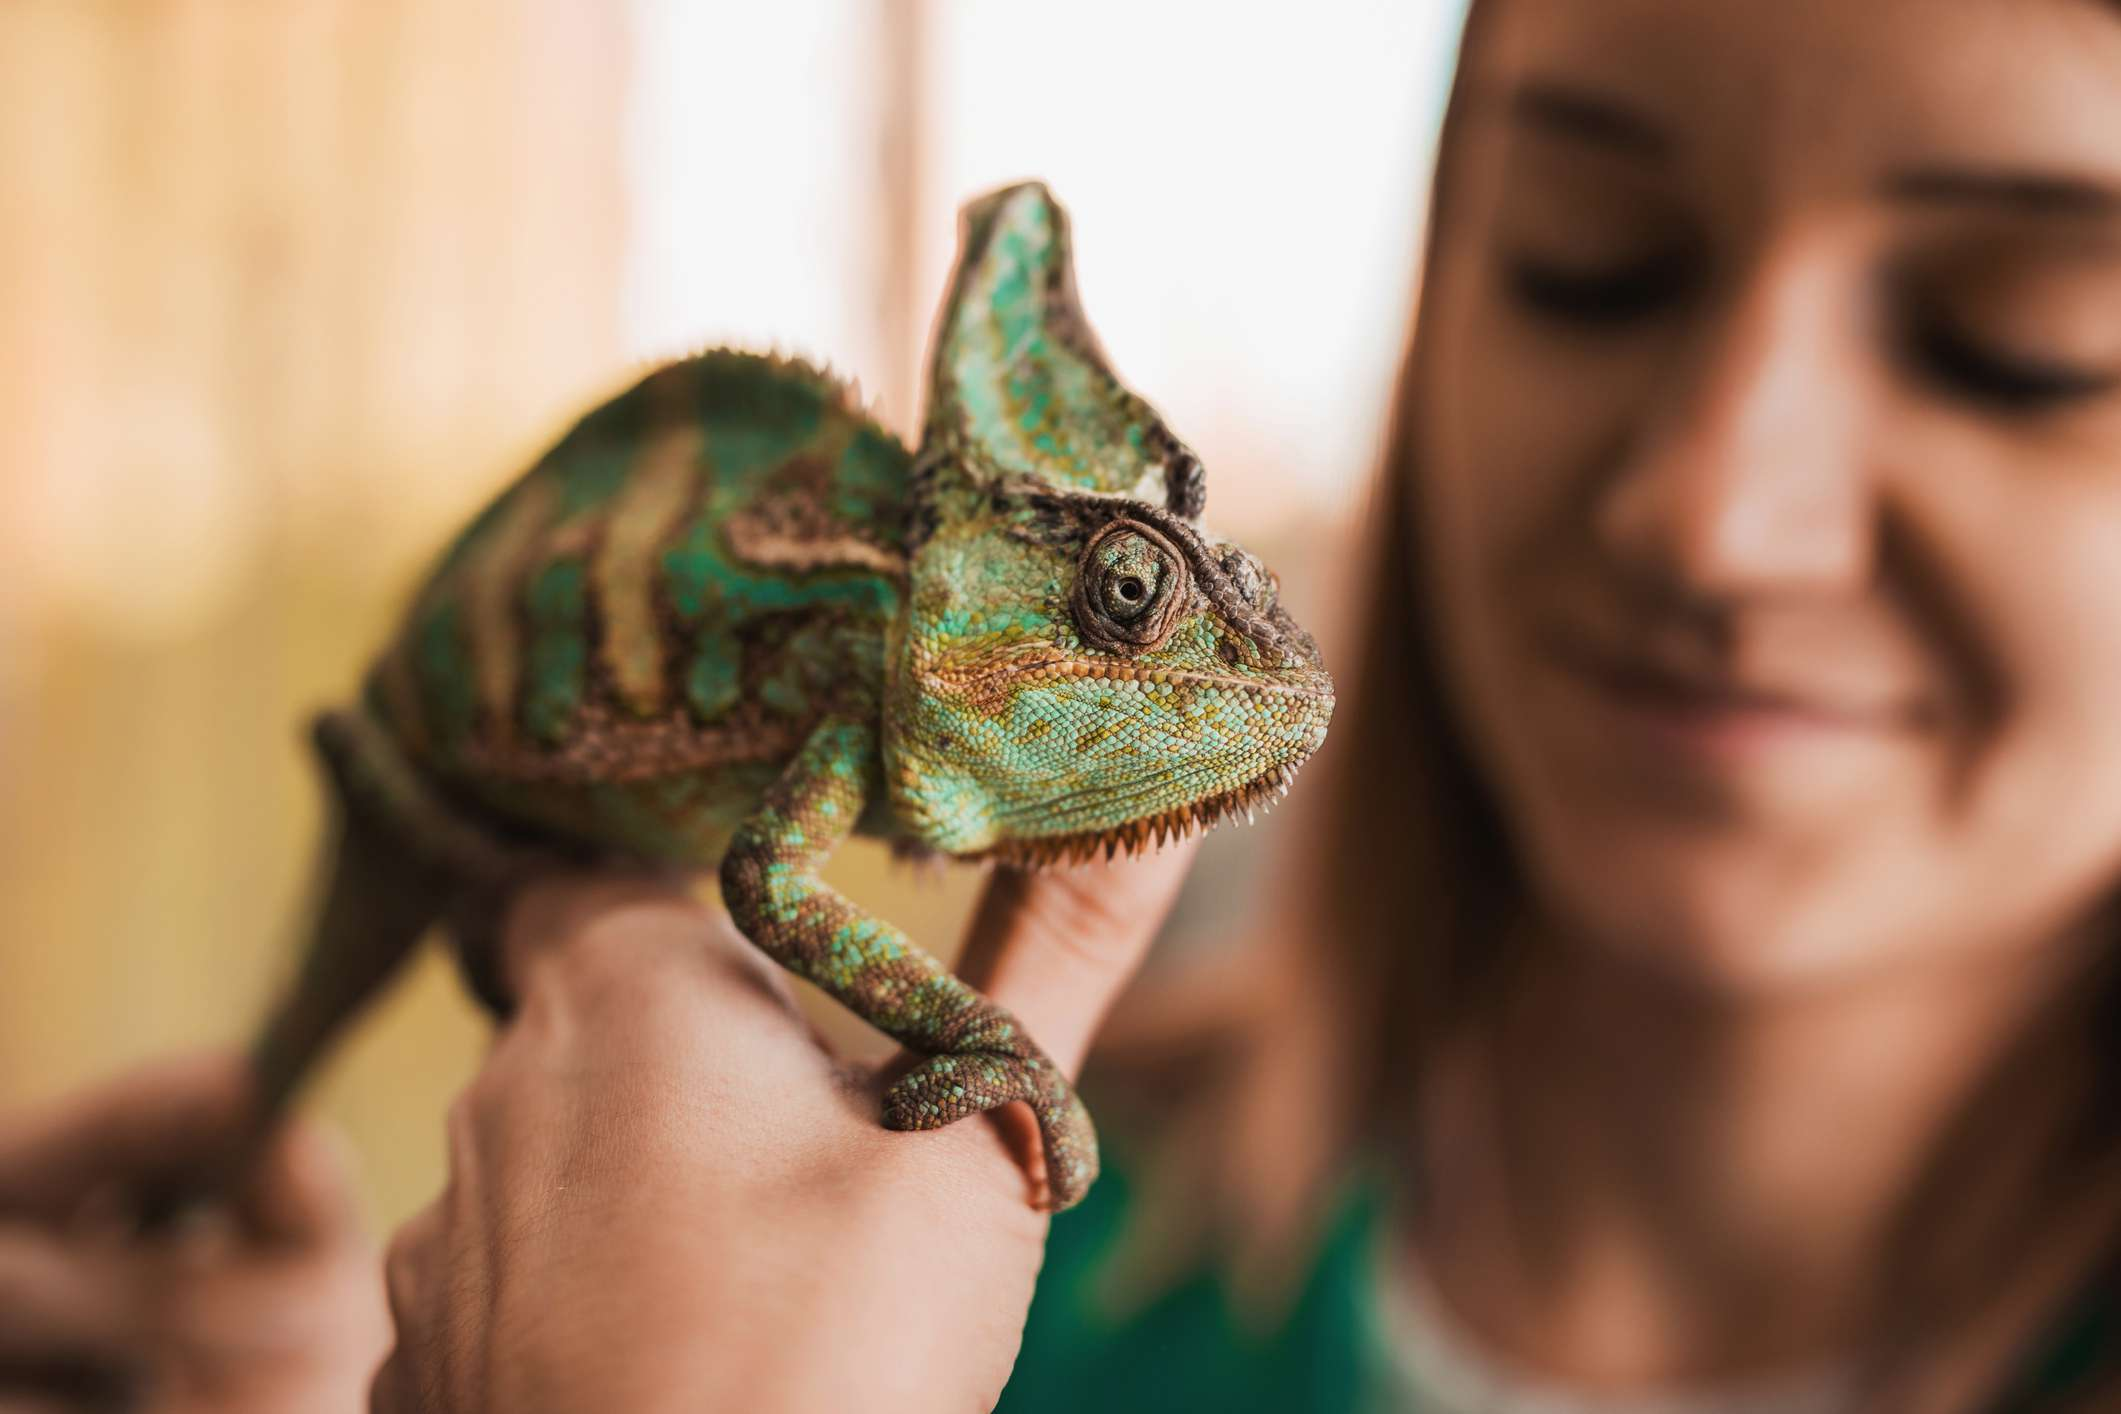 Close up of a chameleon on a woman's hand